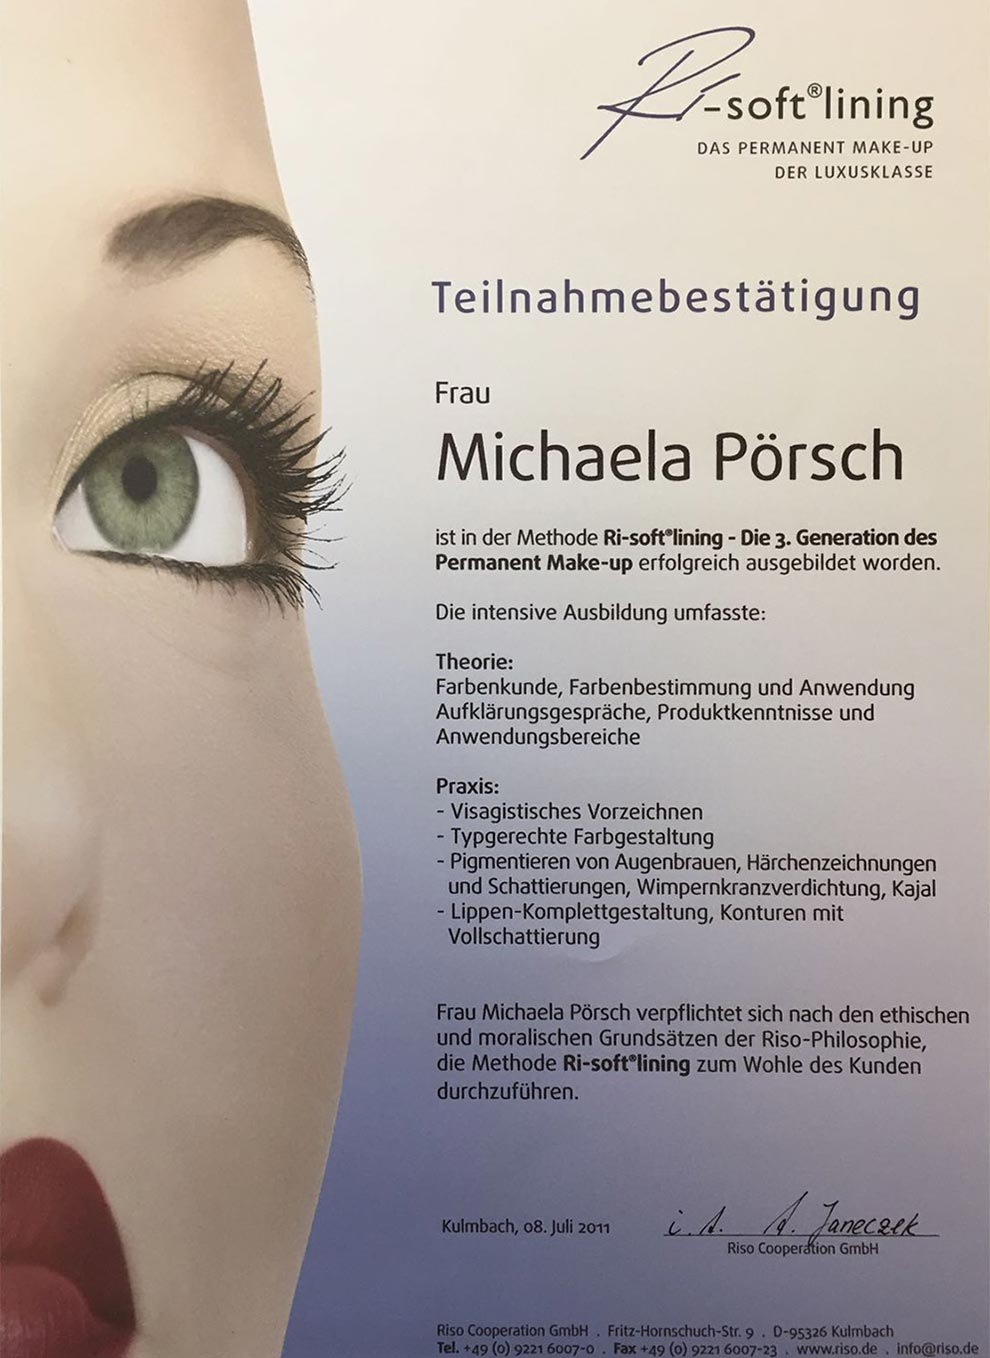 Teilnahmebestätigung Ri-soft Lining Permanent Make-up